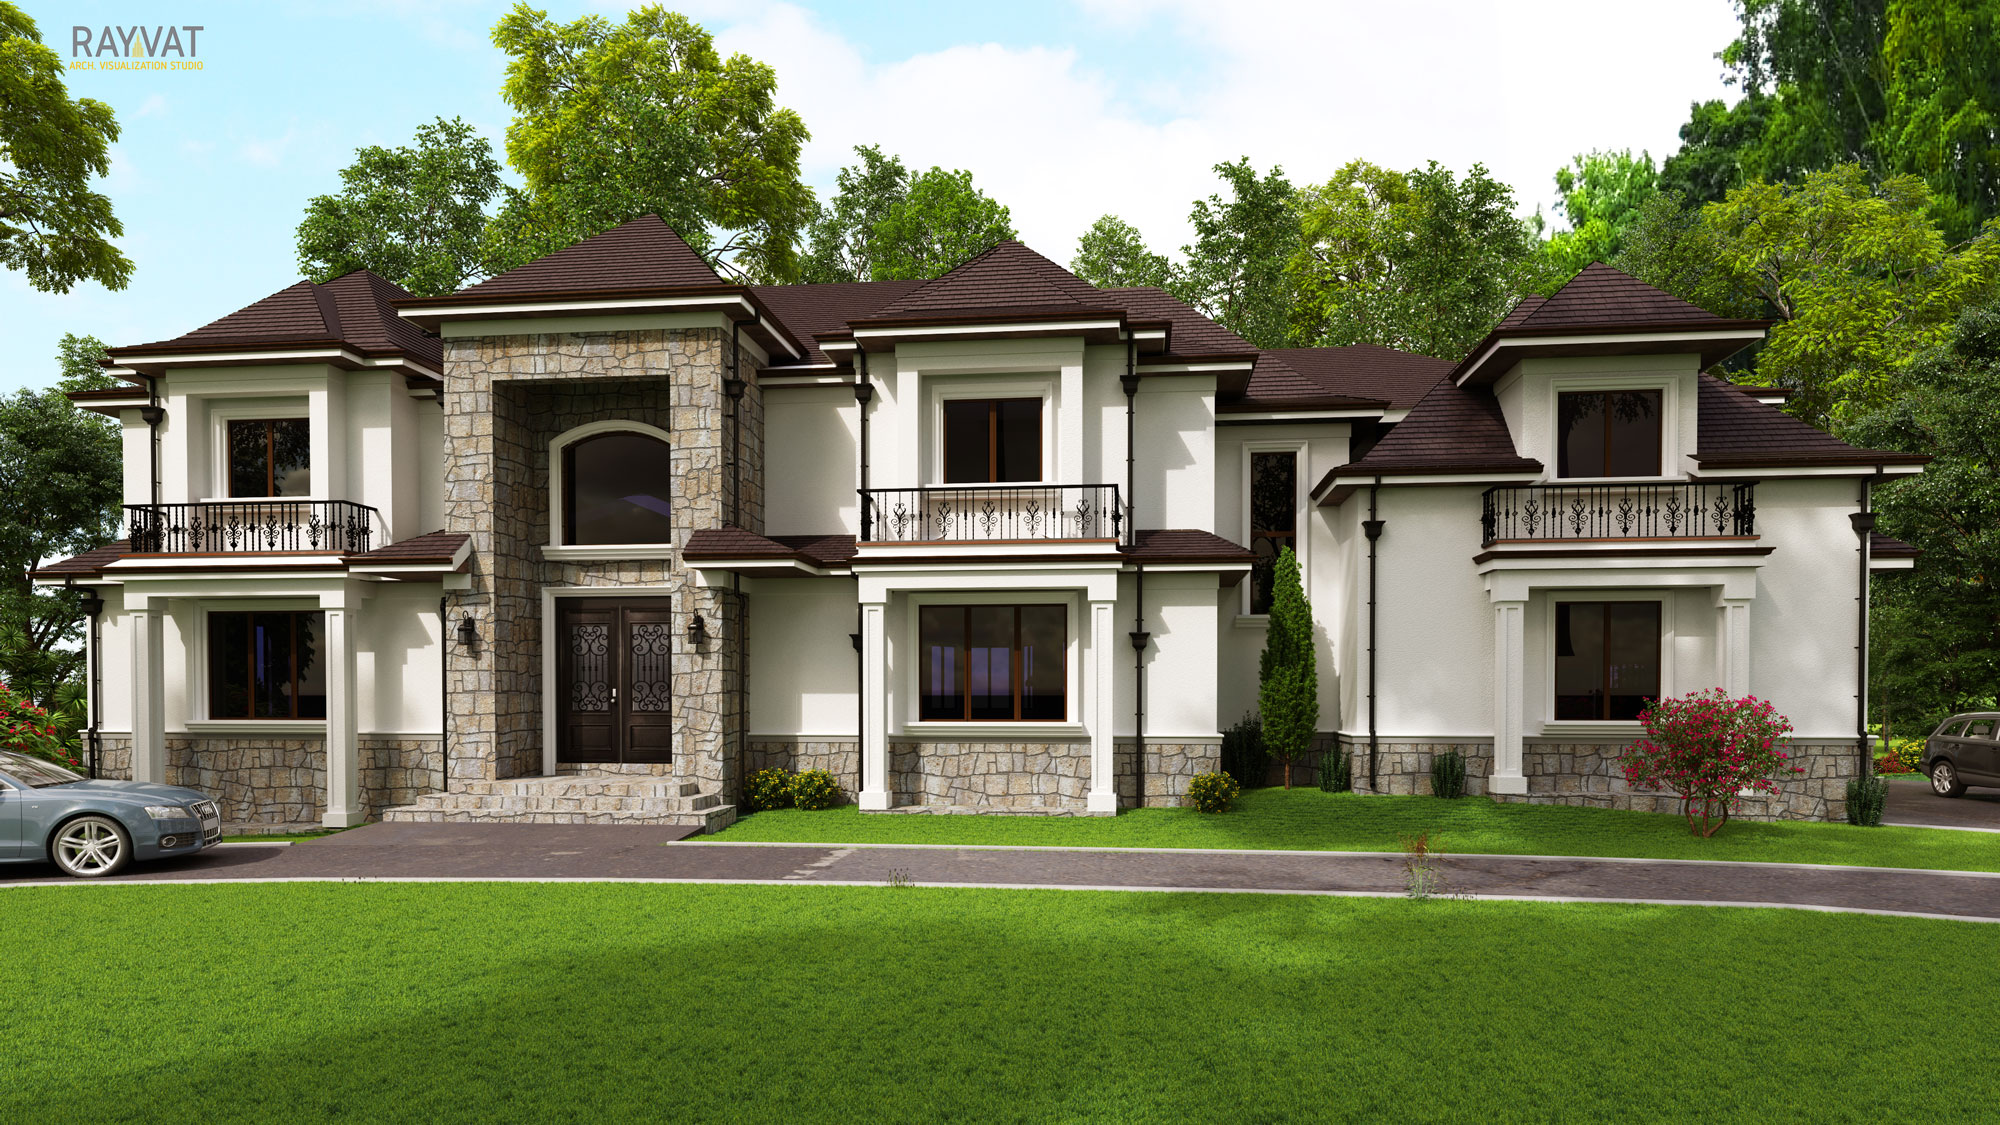 Residential Real Estate Rendering